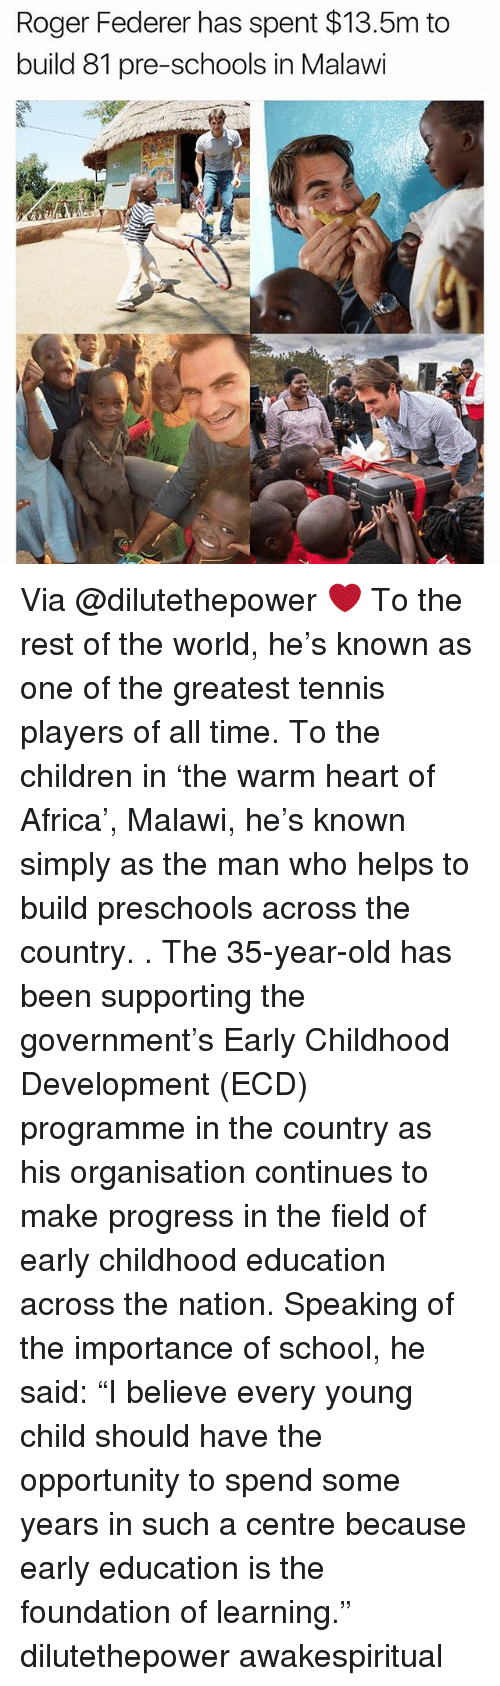 "federer: Roger Federer has spent $13.5m to  build 81 pre-schools in Malawi Via @dilutethepower ❤ To the rest of the world, he's known as one of the greatest tennis players of all time. To the children in 'the warm heart of Africa', Malawi, he's known simply as the man who helps to build preschools across the country. . The 35-year-old has been supporting the government's Early Childhood Development (ECD) programme in the country as his organisation continues to make progress in the field of early childhood education across the nation. Speaking of the importance of school, he said: ""I believe every young child should have the opportunity to spend some years in such a centre because early education is the foundation of learning."" dilutethepower awakespiritual"